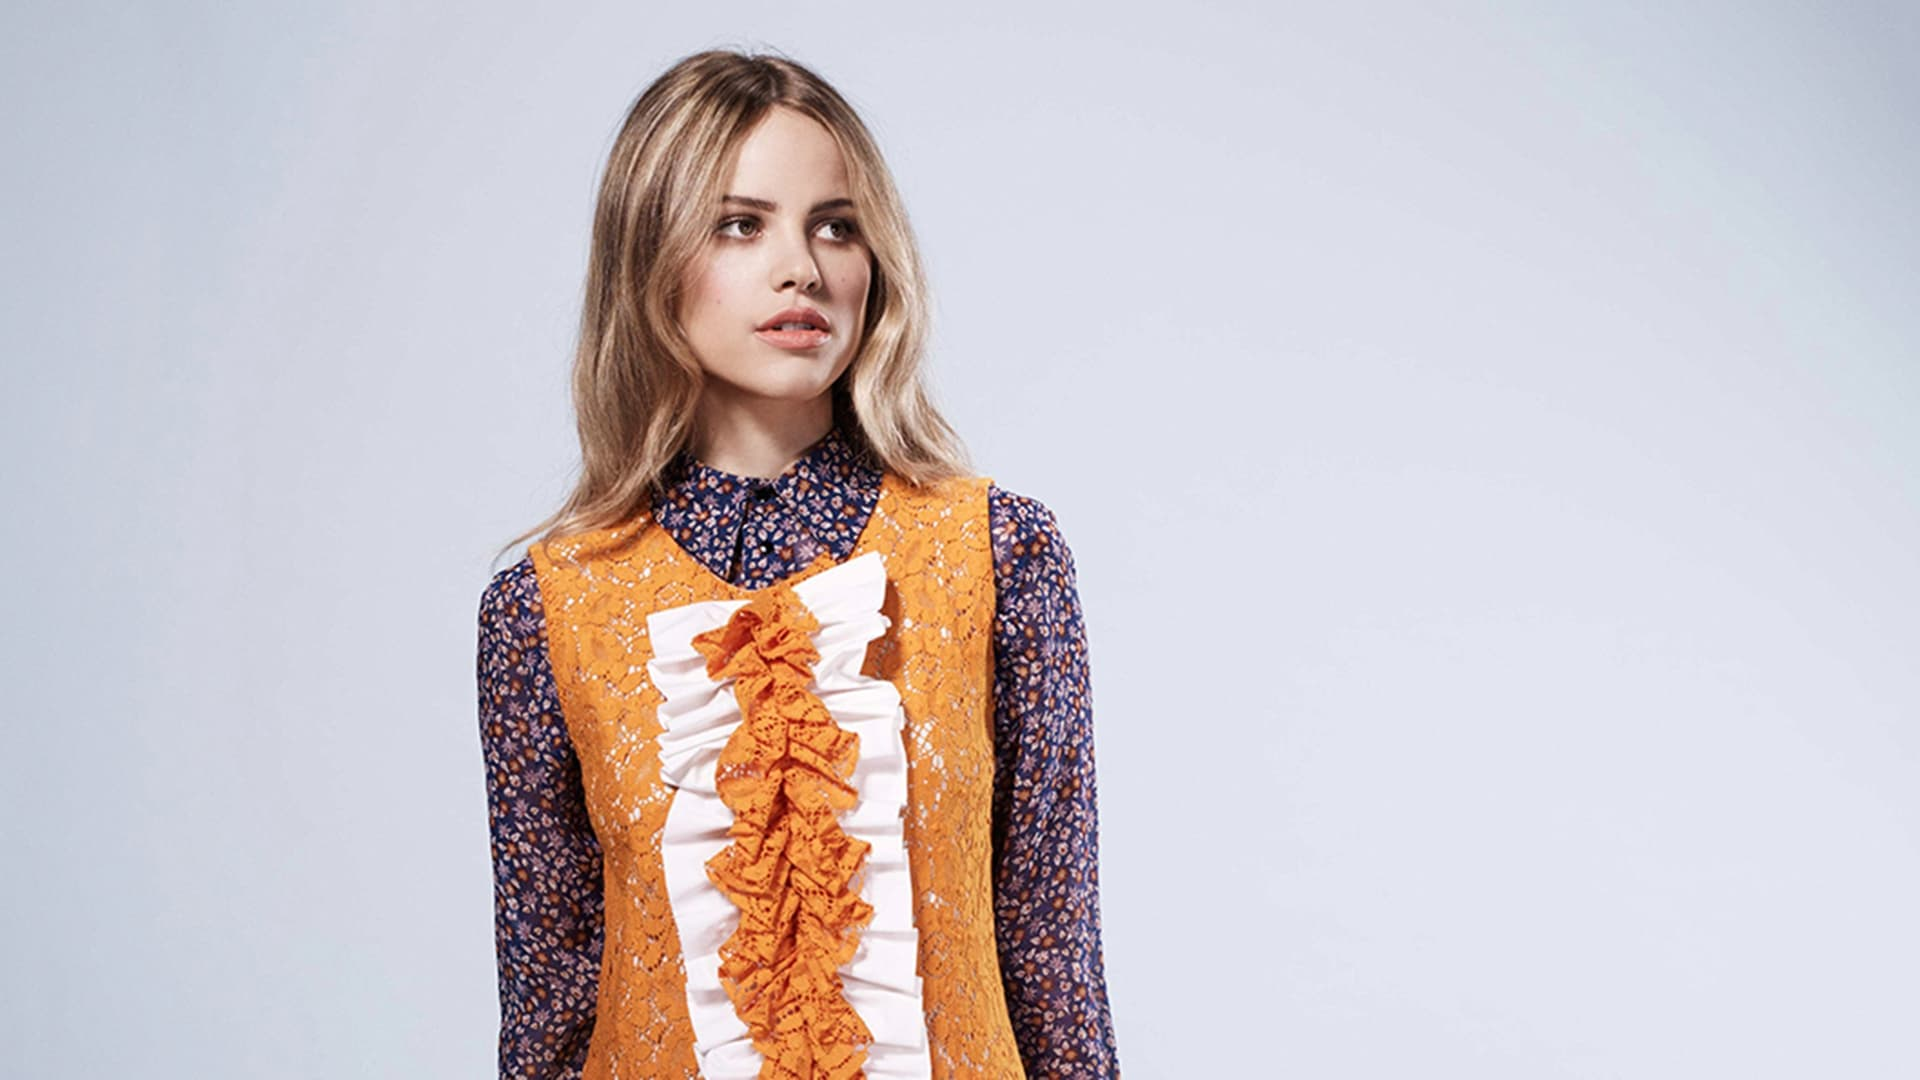 Hd Wallpaper Full Girls Halston Sage Wallpapers Hd High Quality Resolution Download